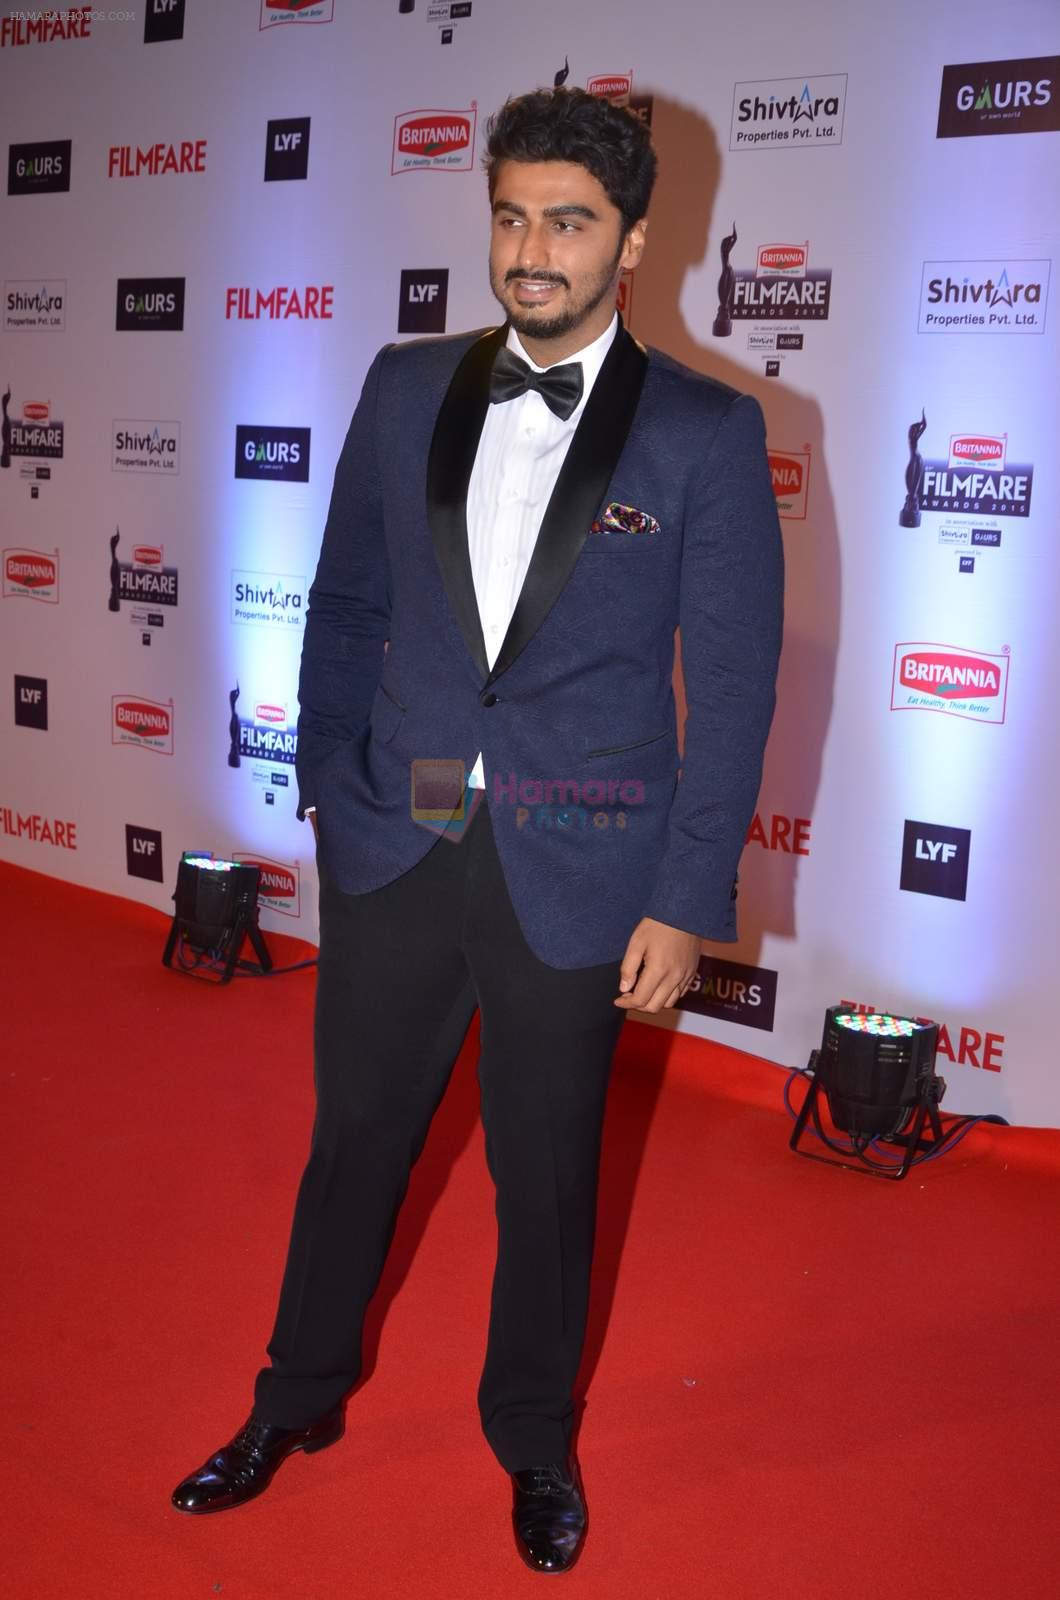 Arjun Kapoor at Filmfare Awards 2016 on 15th Jan 2016